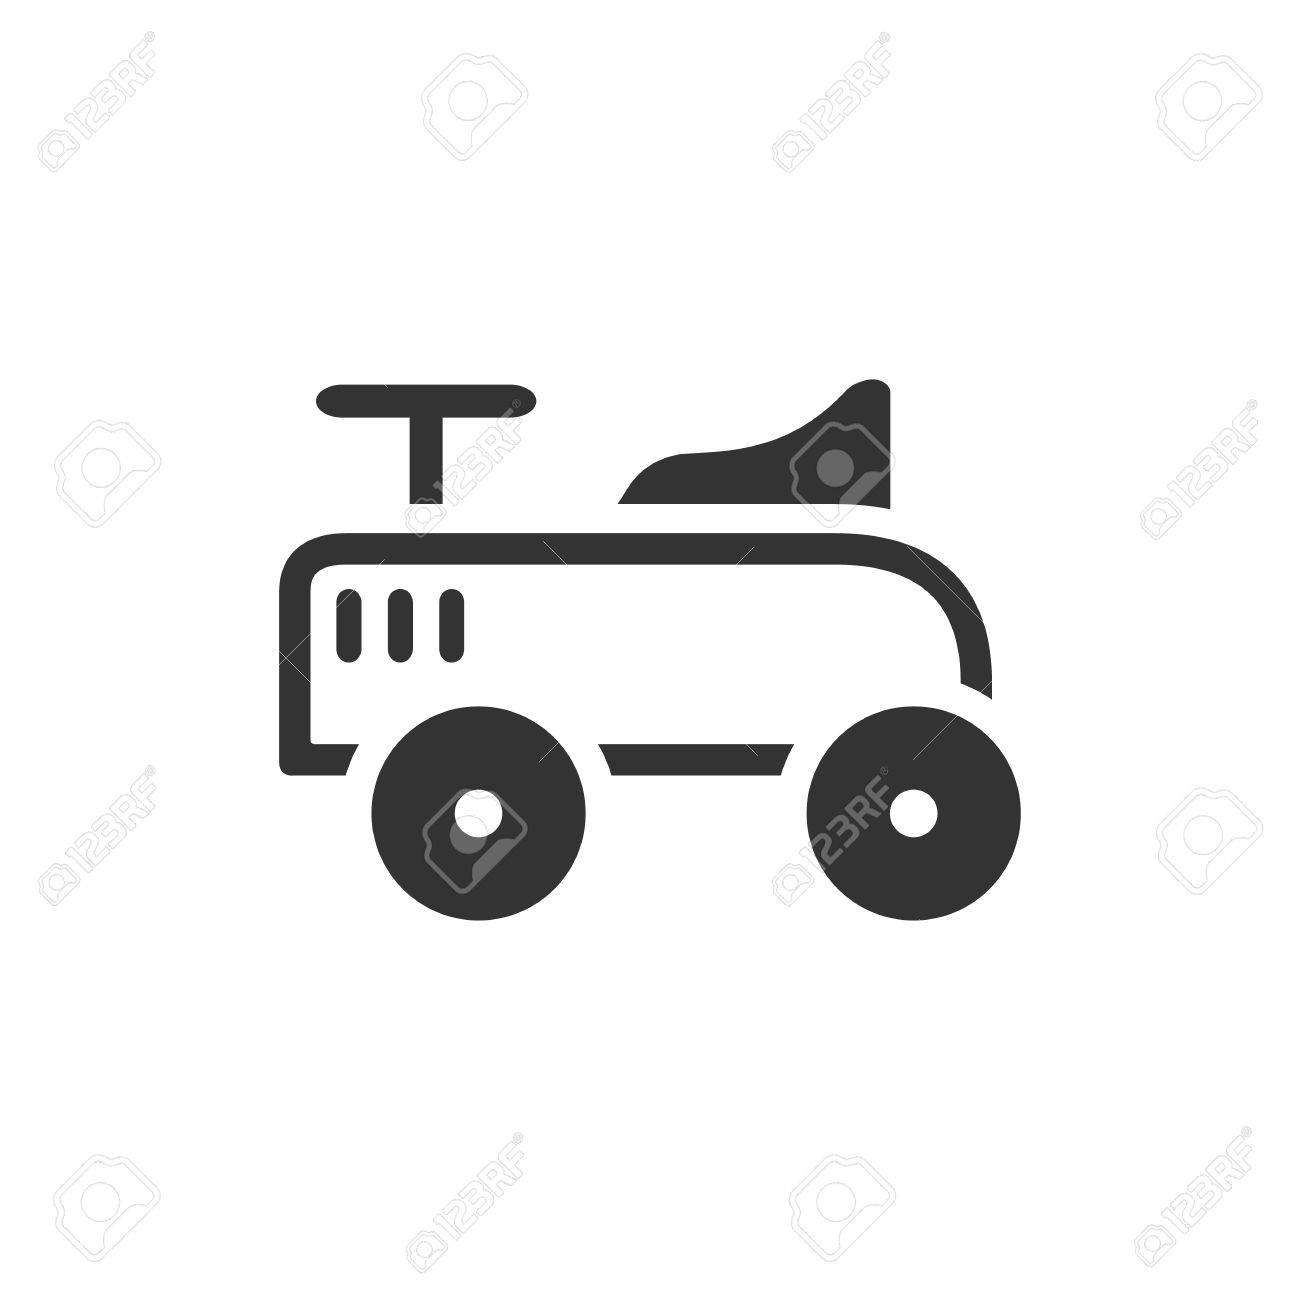 Toy Car Icon In Single Grey Color Kids Children Playing Driver